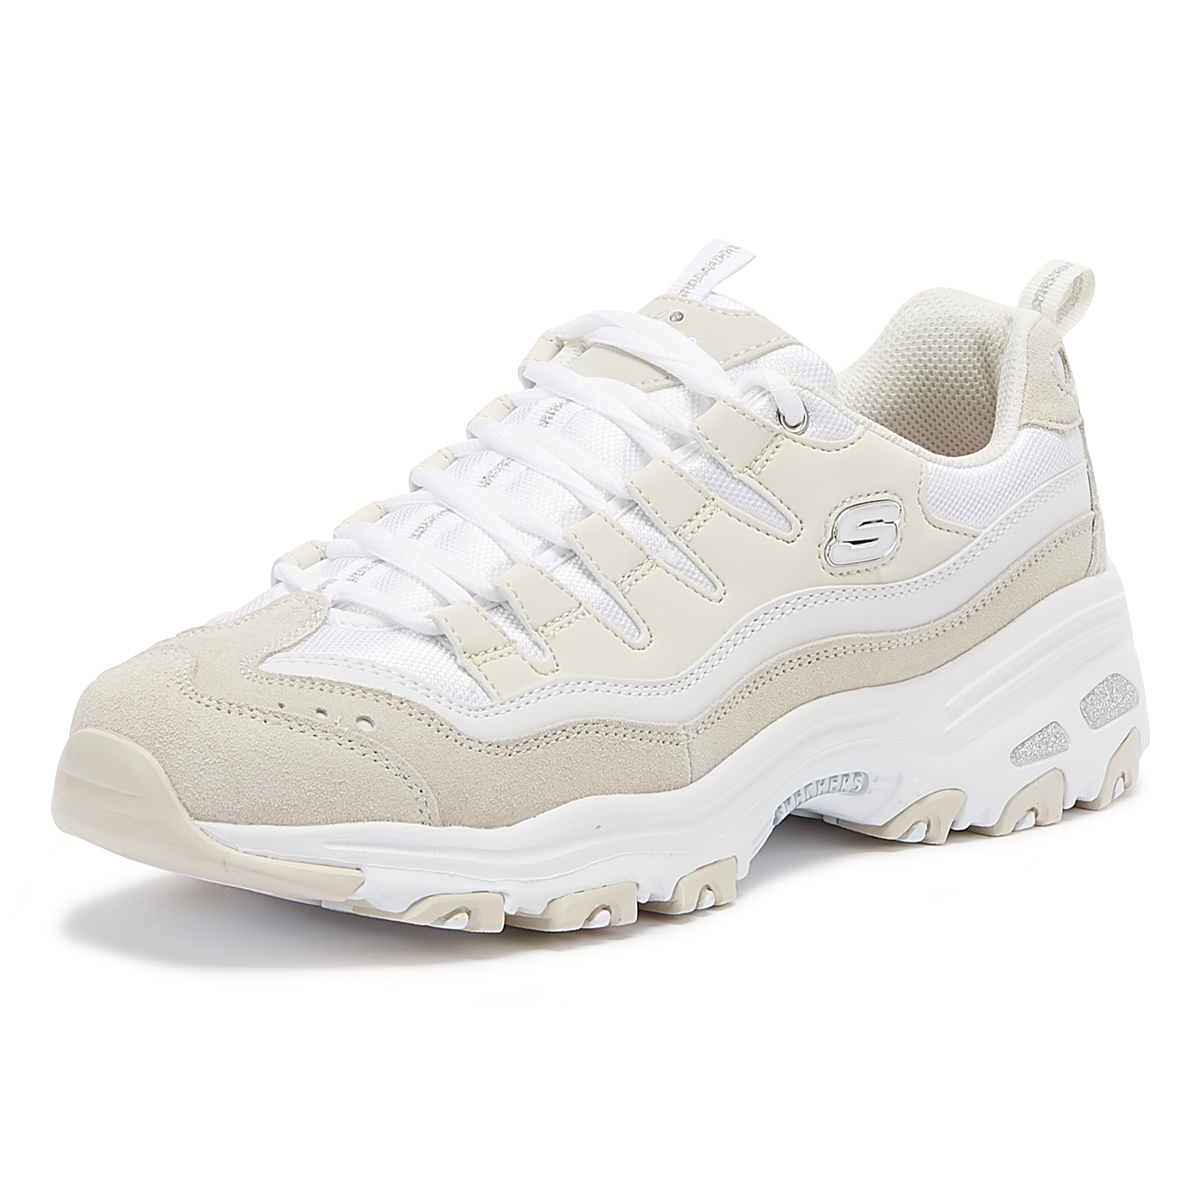 b97dc921435fe Skechers D'Lites Sure Thing Womens White & Natural Trainers Ladies Casual  Shoes